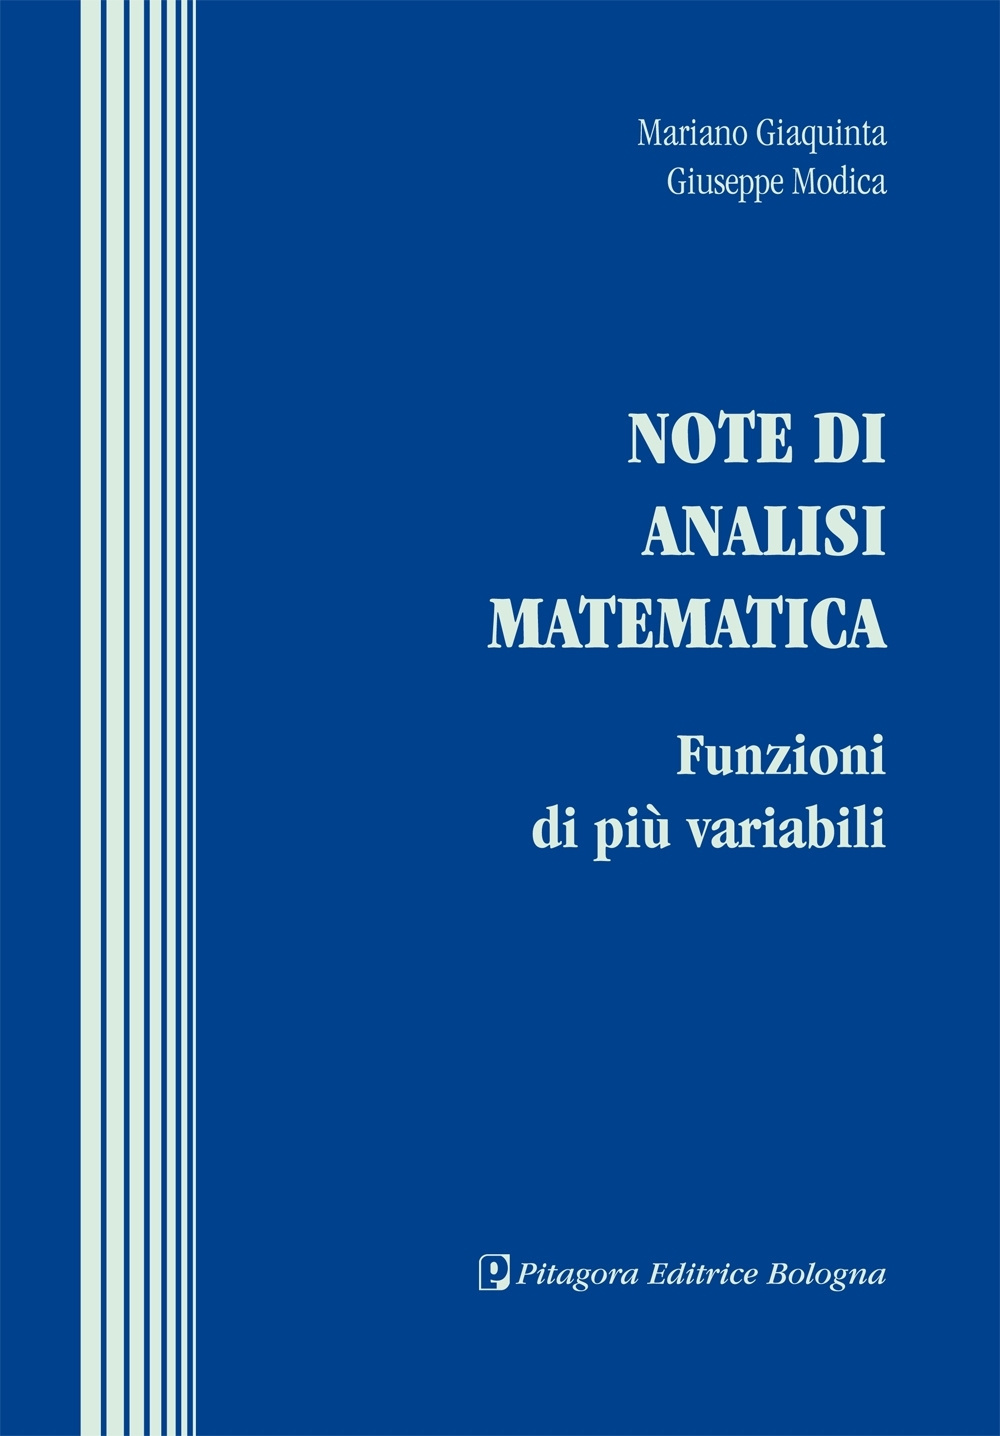 Note di analisi matematica....